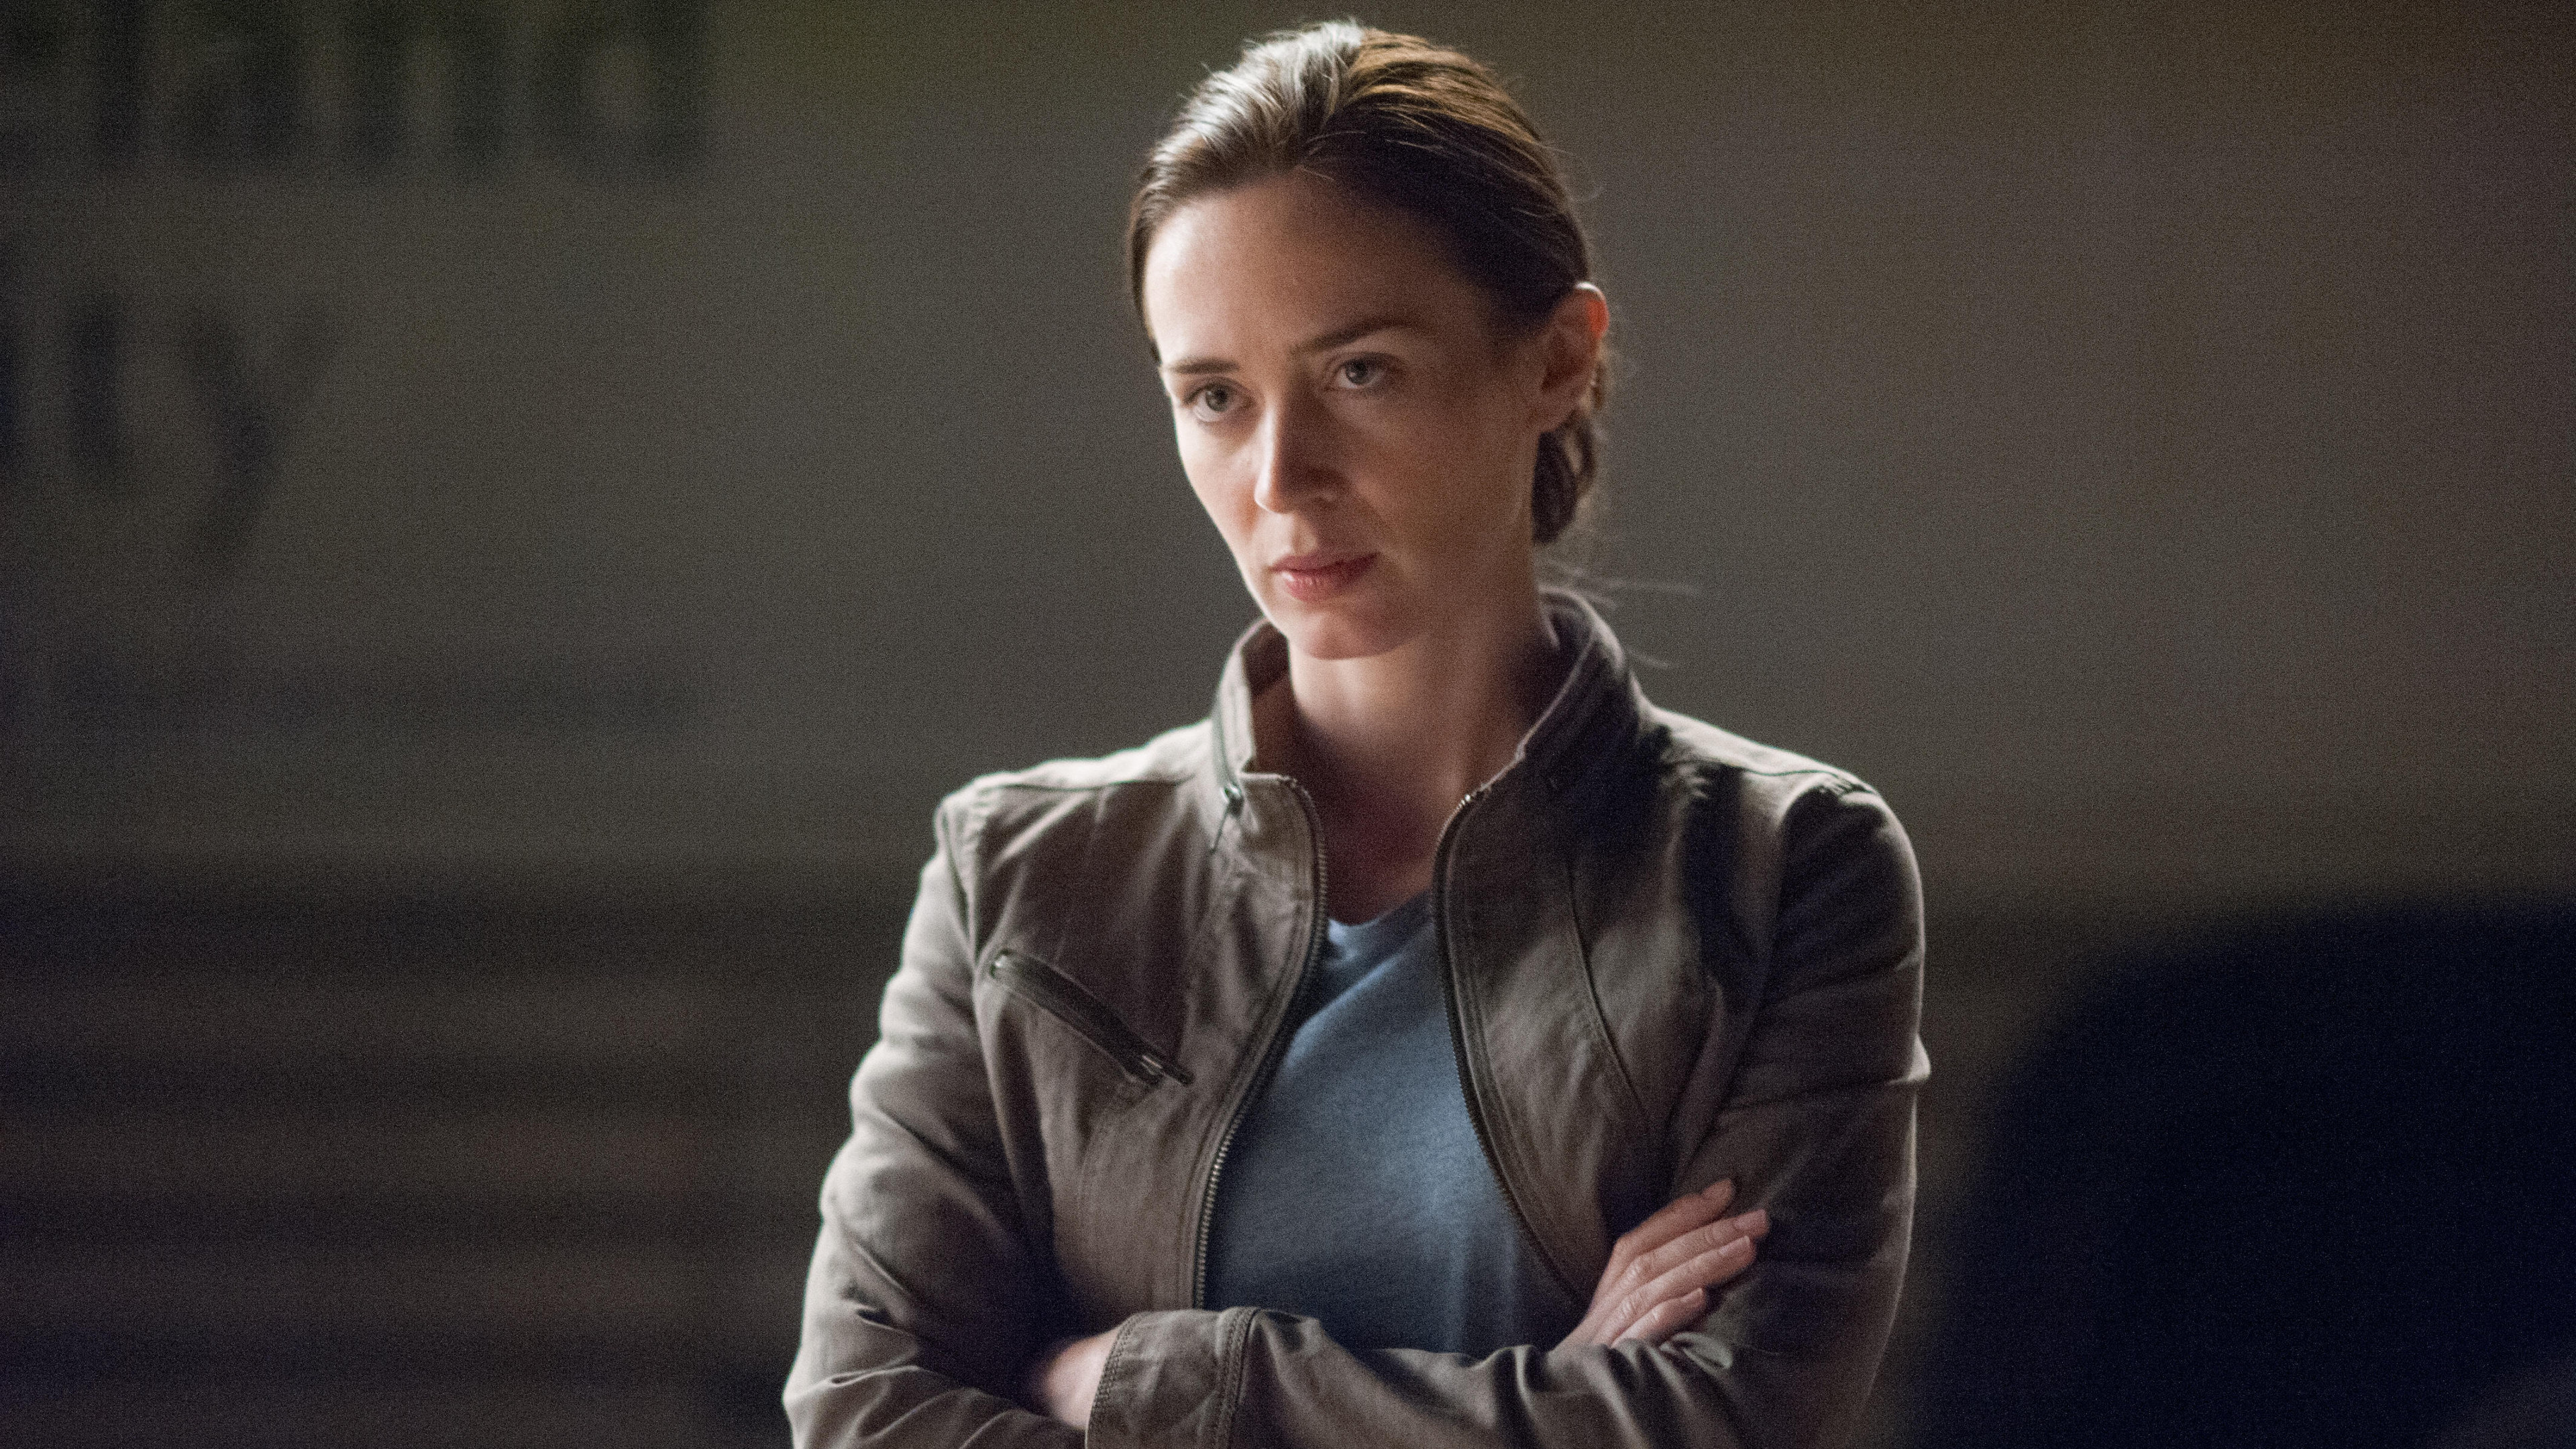 'Soldado' Screenwriter Reveals Why There Was No Room for Emily Blunt in 'Sicario' Sequel